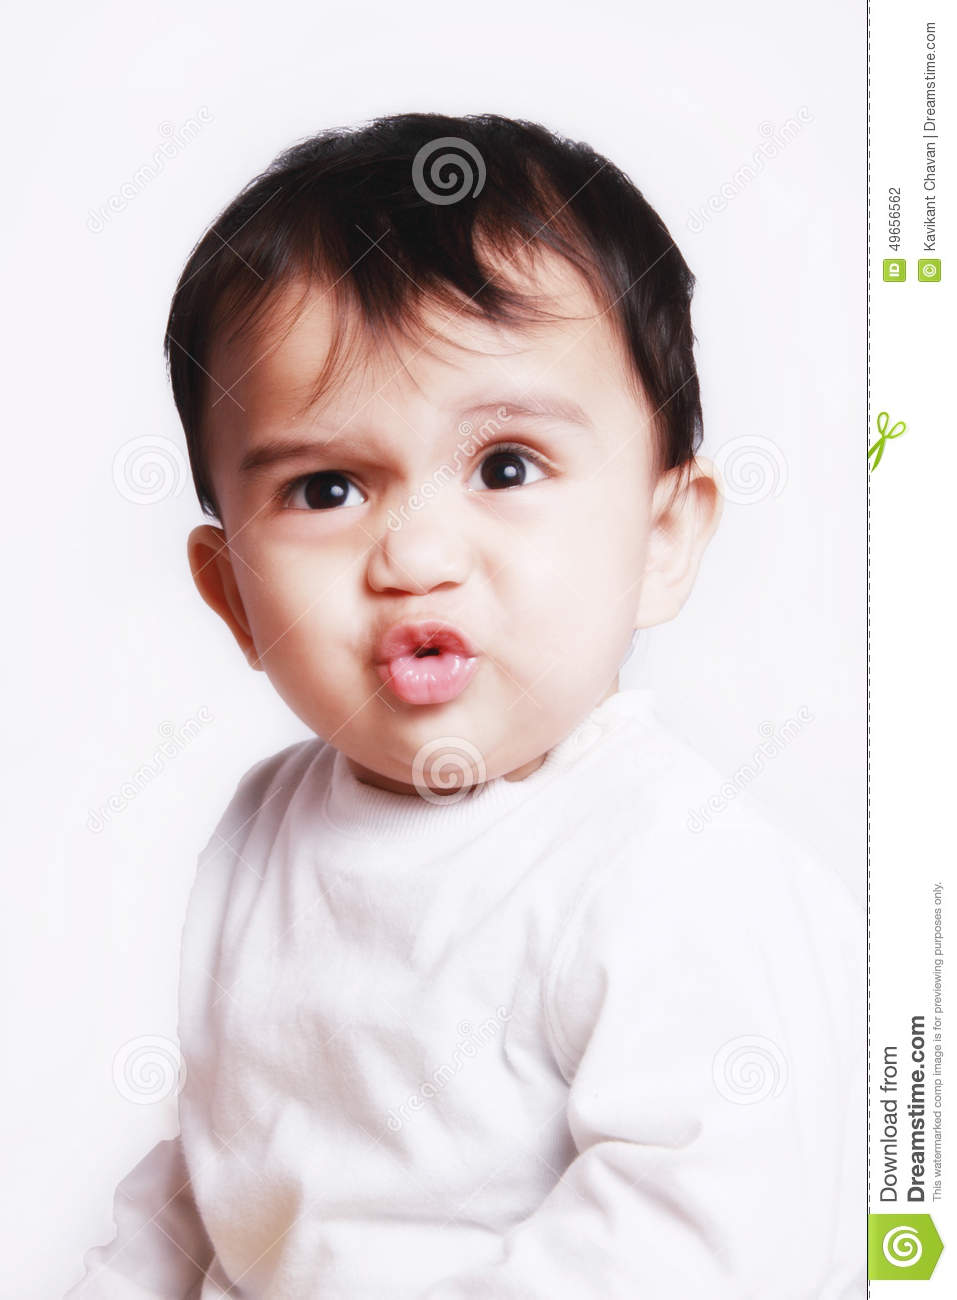 cute baby giving funny expression stock photo - image of face, look